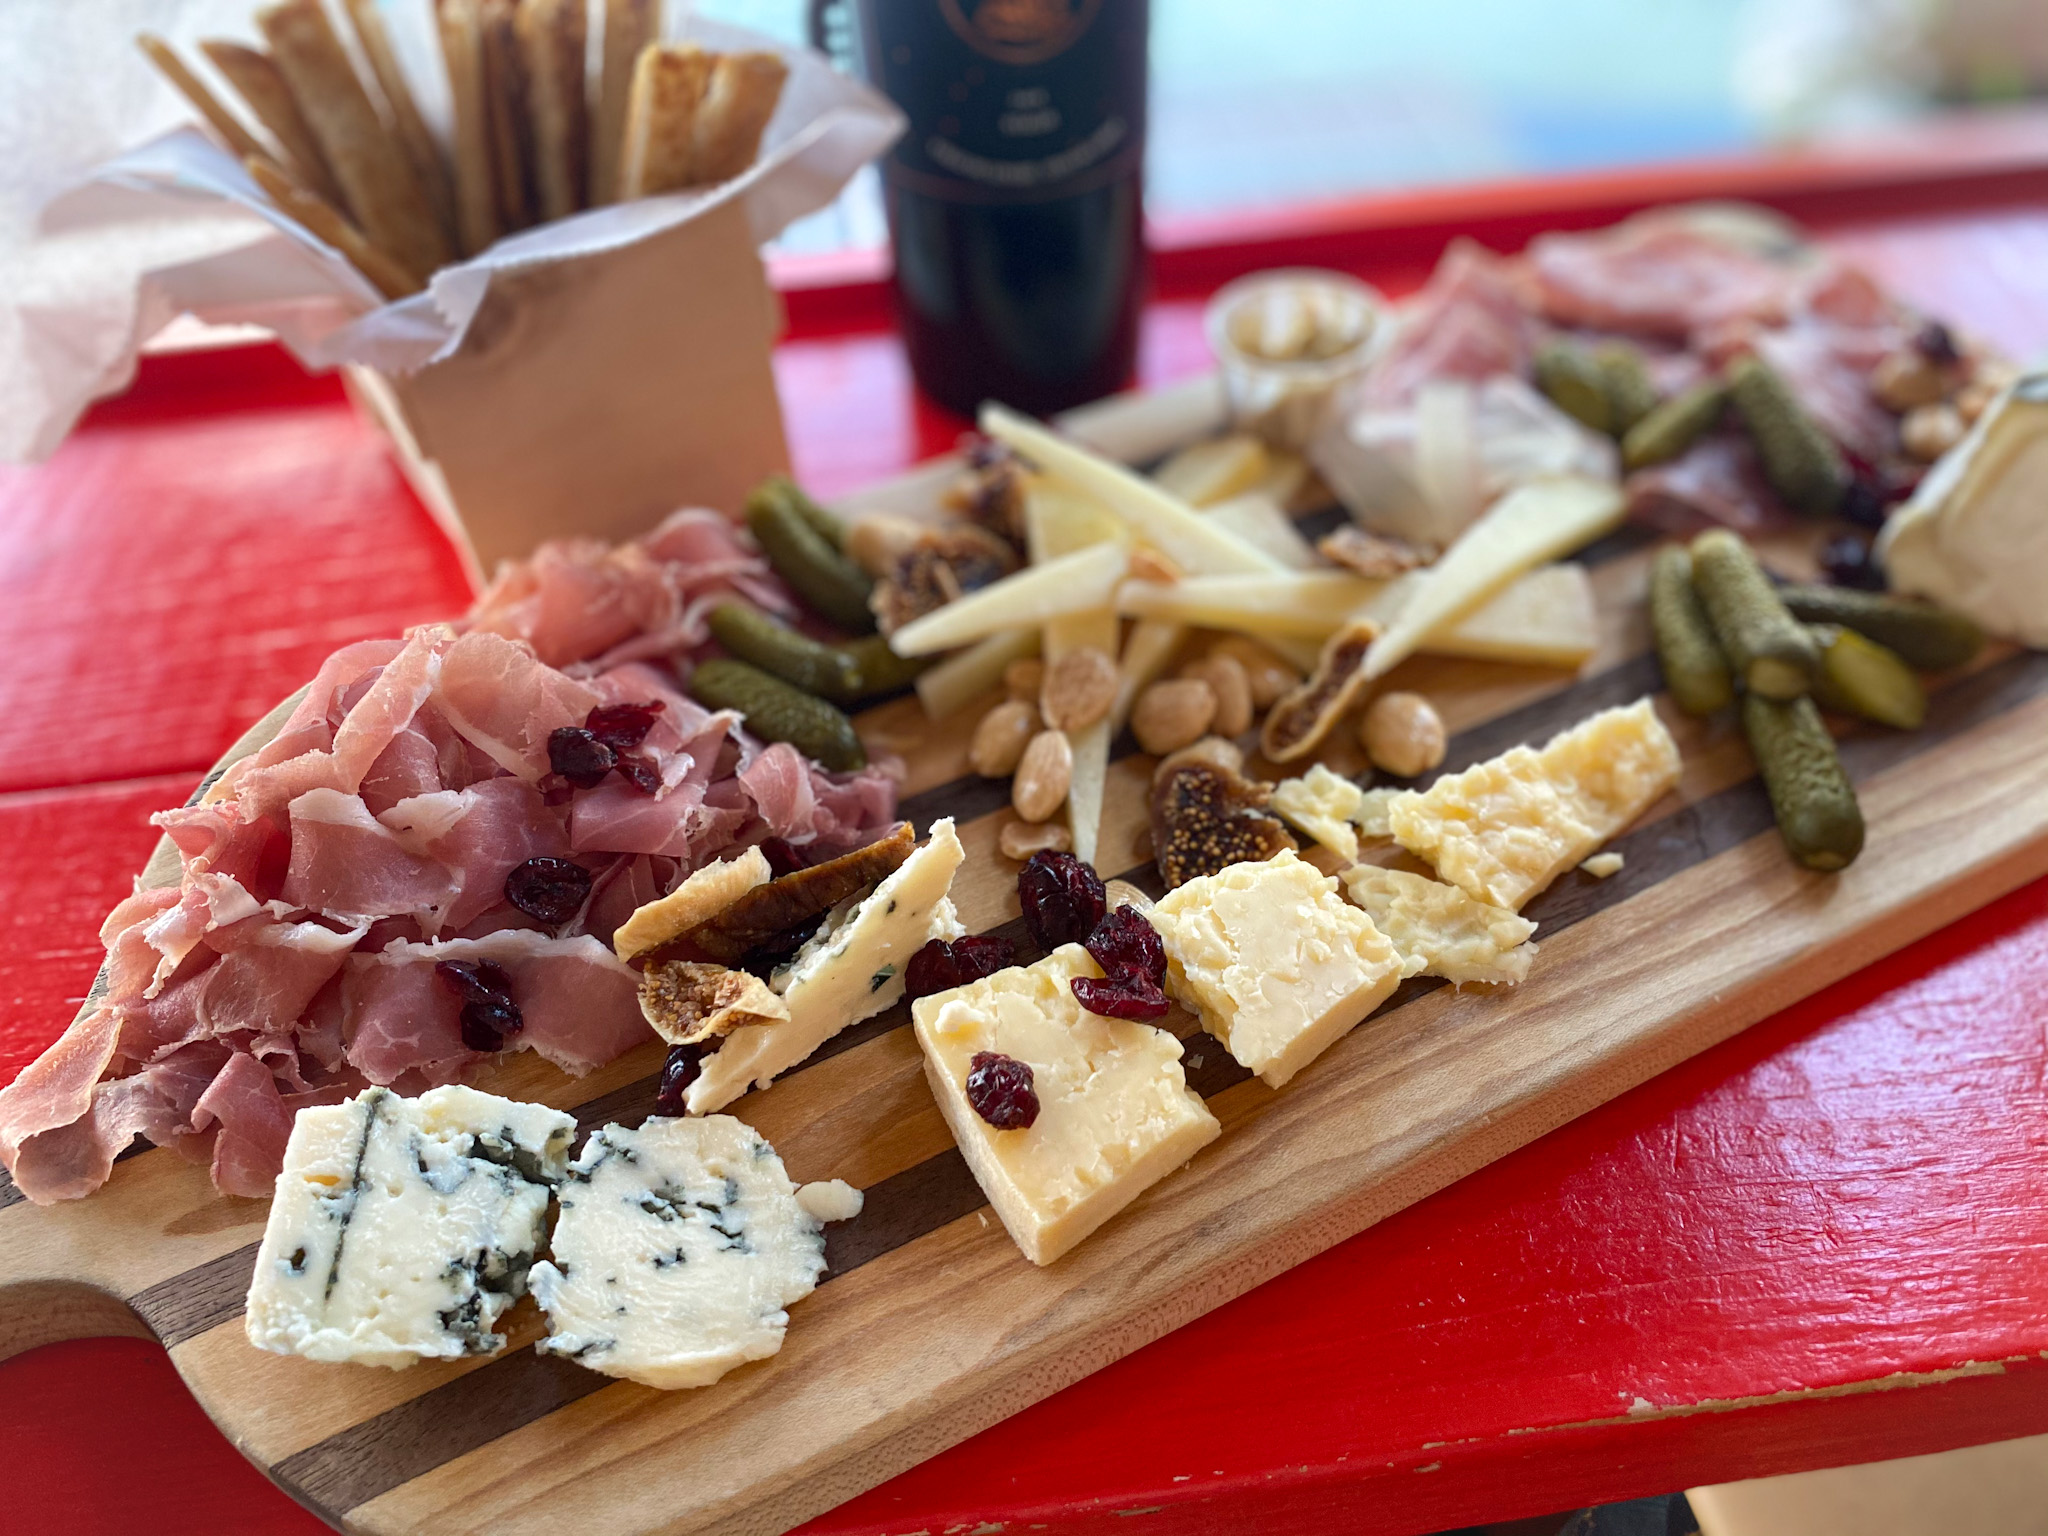 Cheese and charcuterie portrait mode